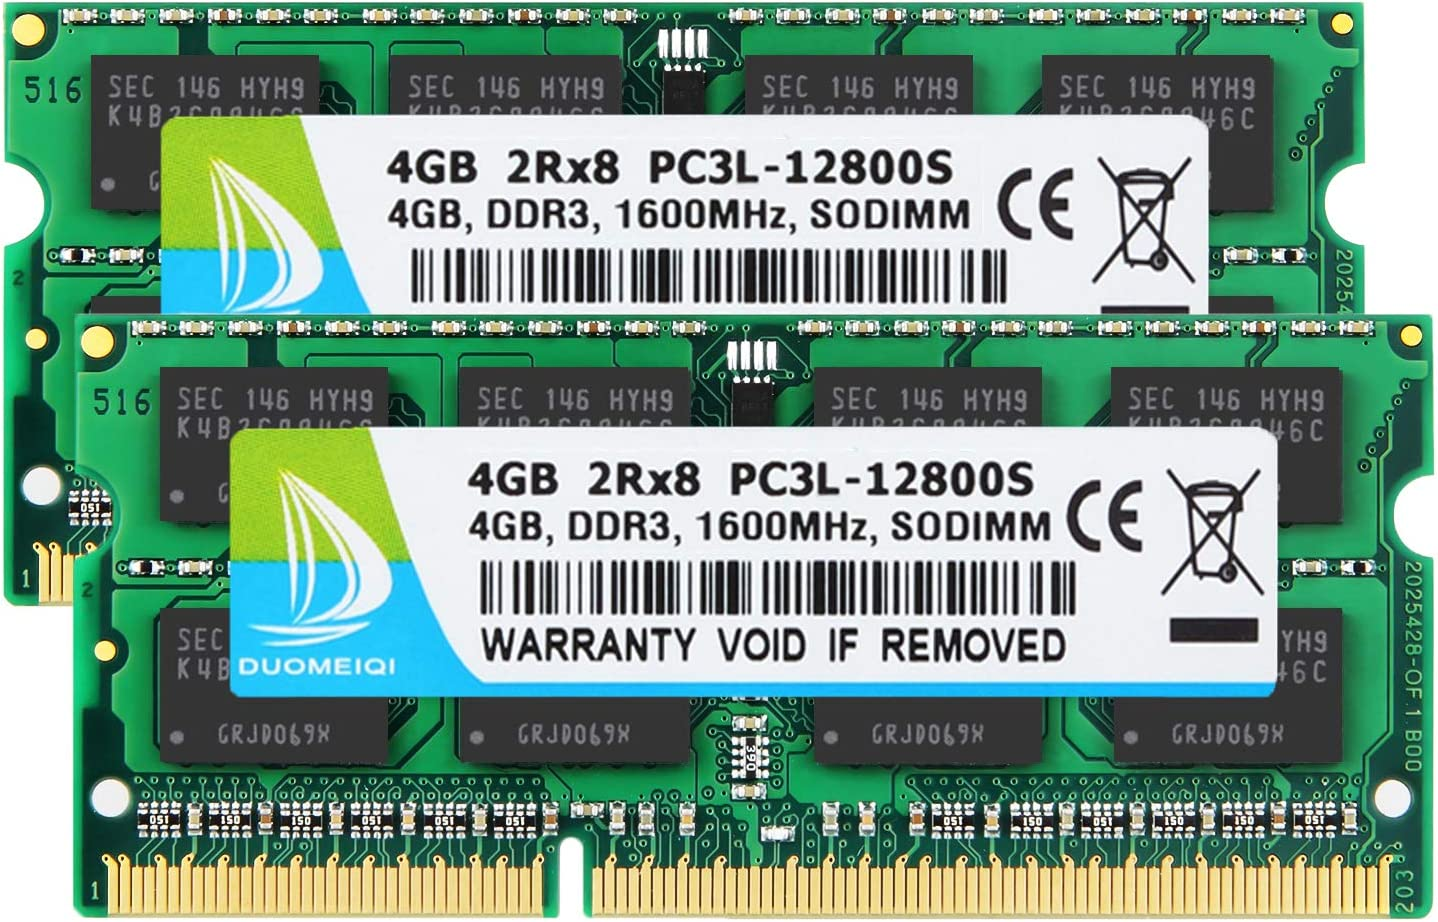 DUOMEIQI 8GB Kit (2 X 4GB) 2RX8 PC3L / PC3-12800, DDR3L / DDR3 1600MHz SODIMM RAM for AMD Intel Laptop, Early/Mid/Late 2011, Mid/Late 2012, Early/Late 2013, Late 2014, Late 2015 MacBook Pro, iMac, Mac